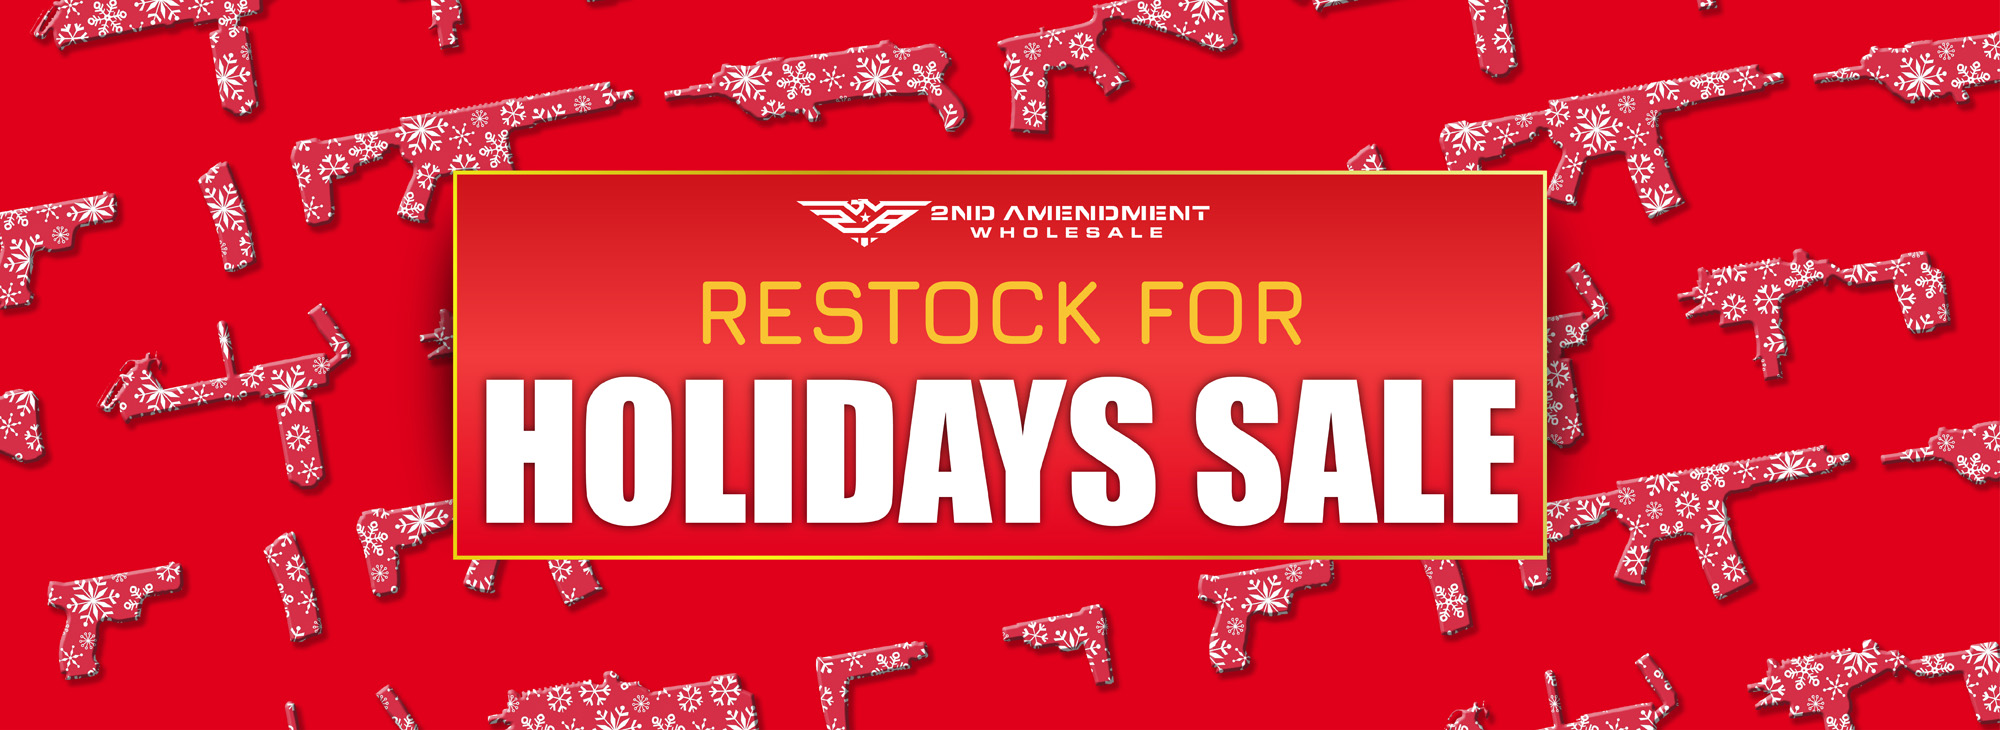 Restock holiday sale